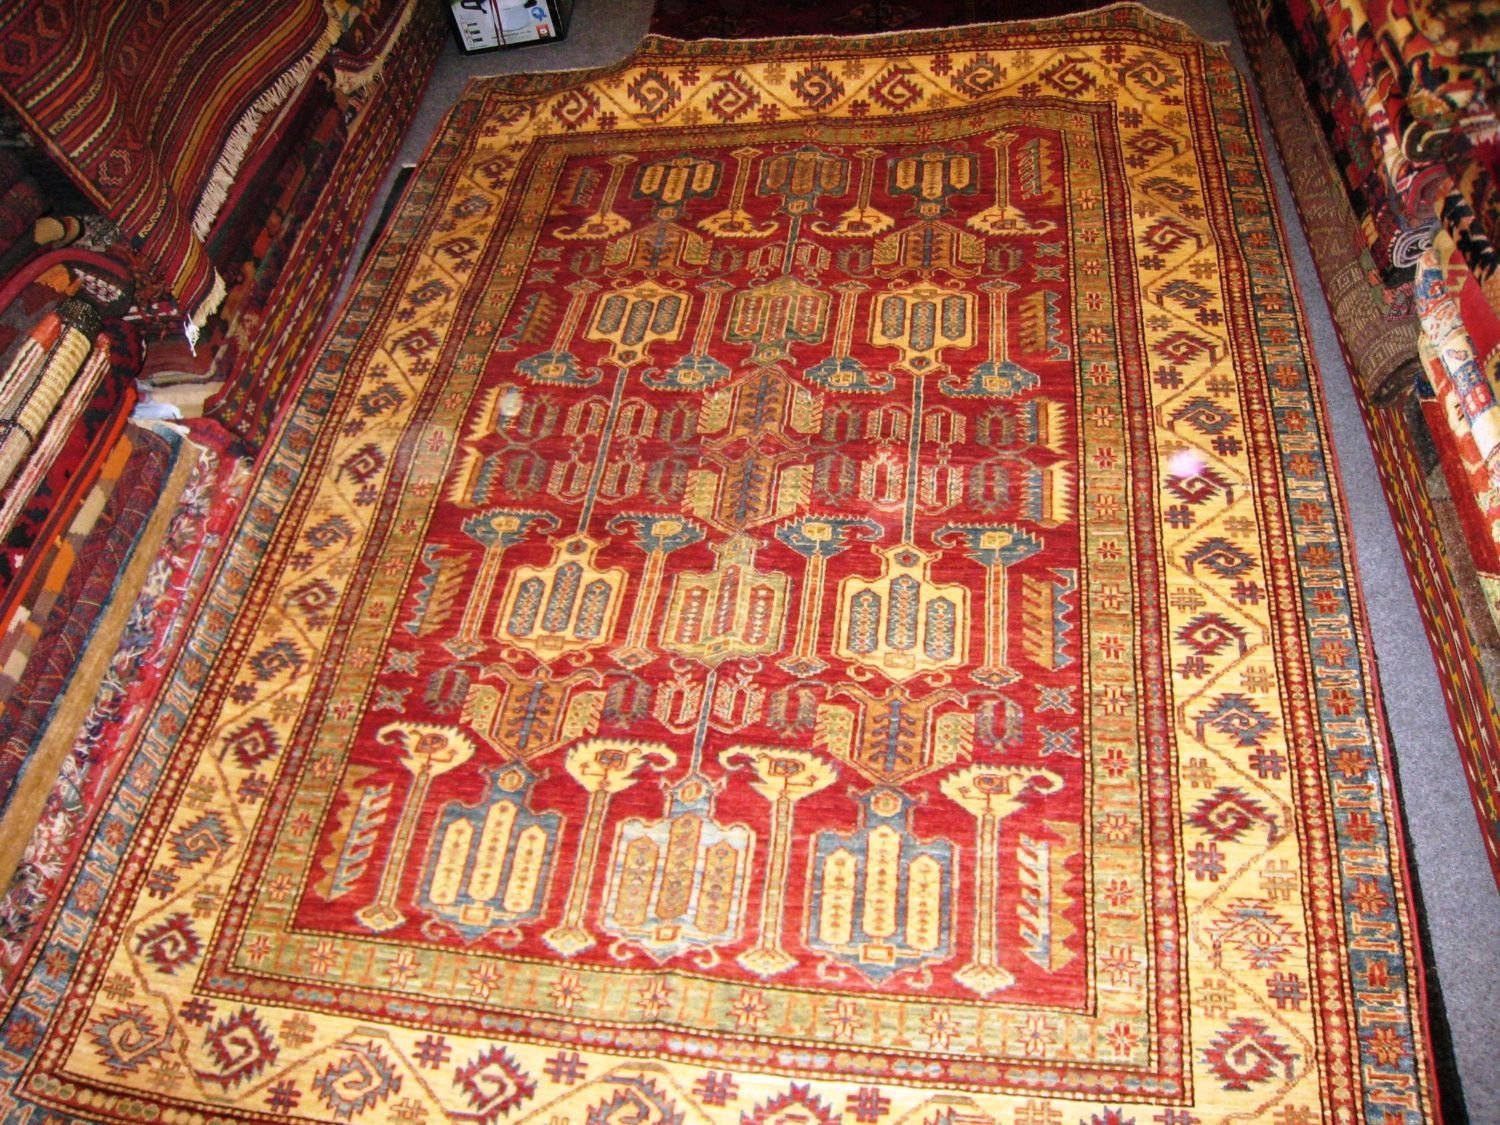 PERSIAN ORIENTAL CARPET Rug Khazar Bukhara Afghan Afghanistan 5x8 Hand Knotted 100 Wool Traditional Bed